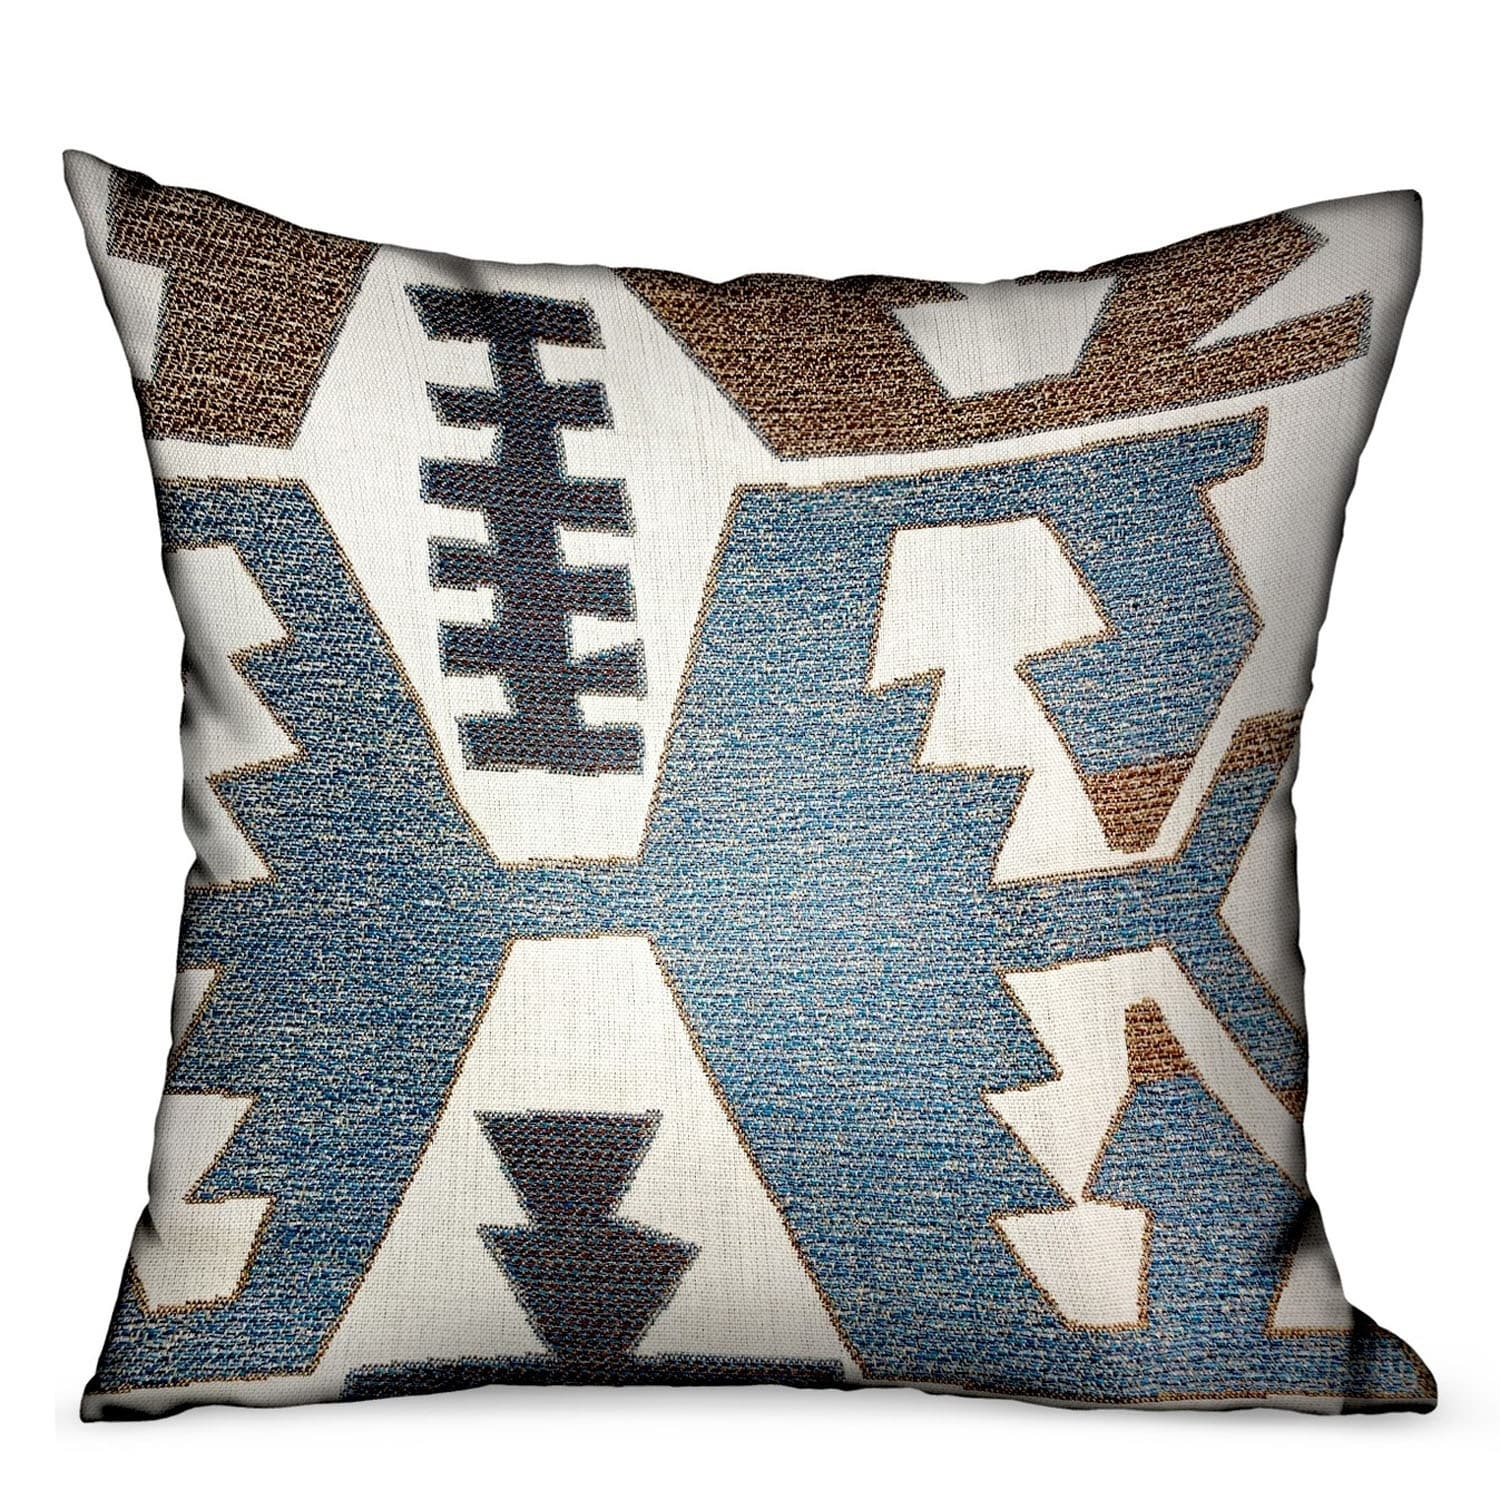 Plutus Wild Chumash Blue Brown Geometric Luxury Outdoor Indoor Decorative Throw Pillow Overstock 27345082